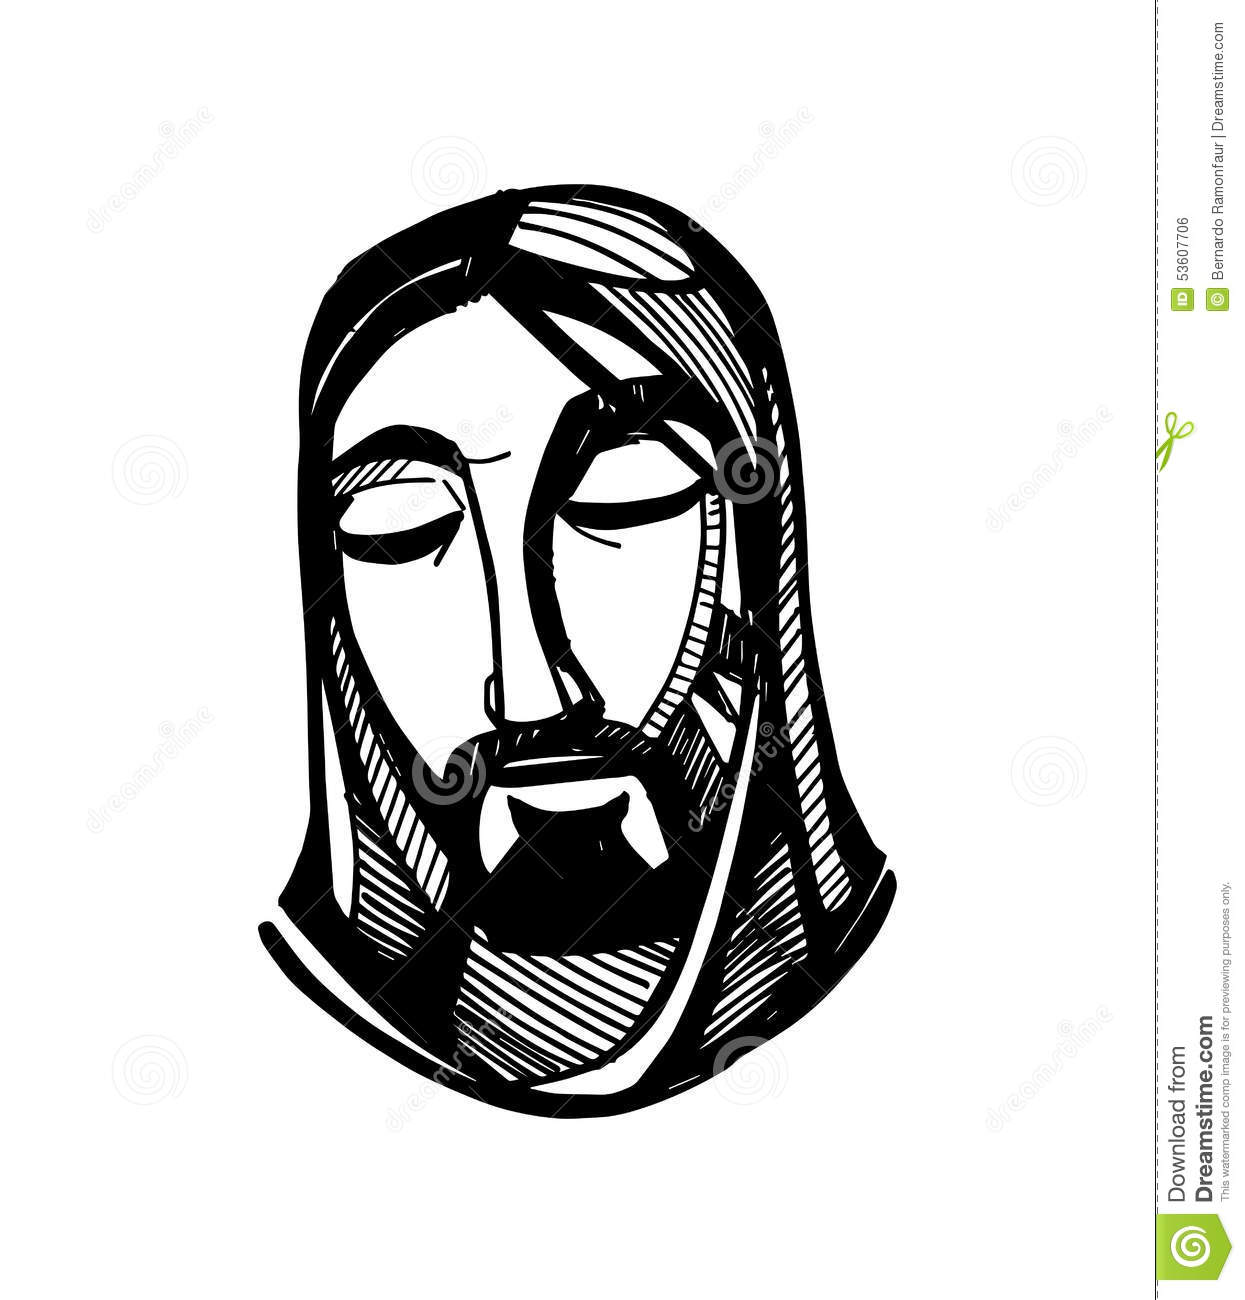 Line Drawing Of Jesus Face : Jesus face stock vector illustration of